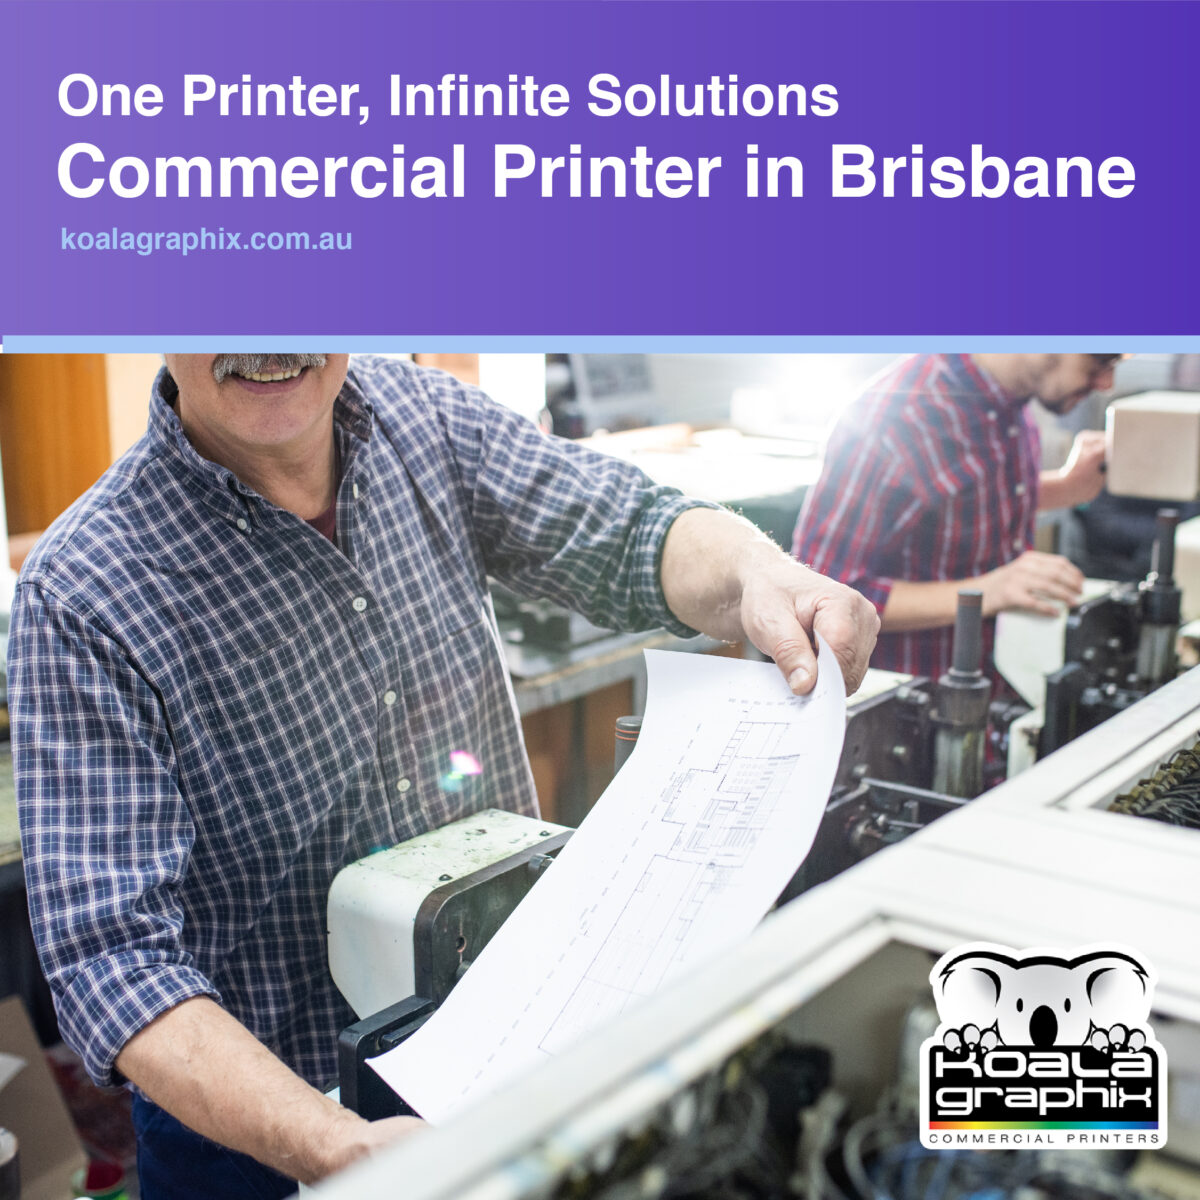 printer in Brisbane commercial